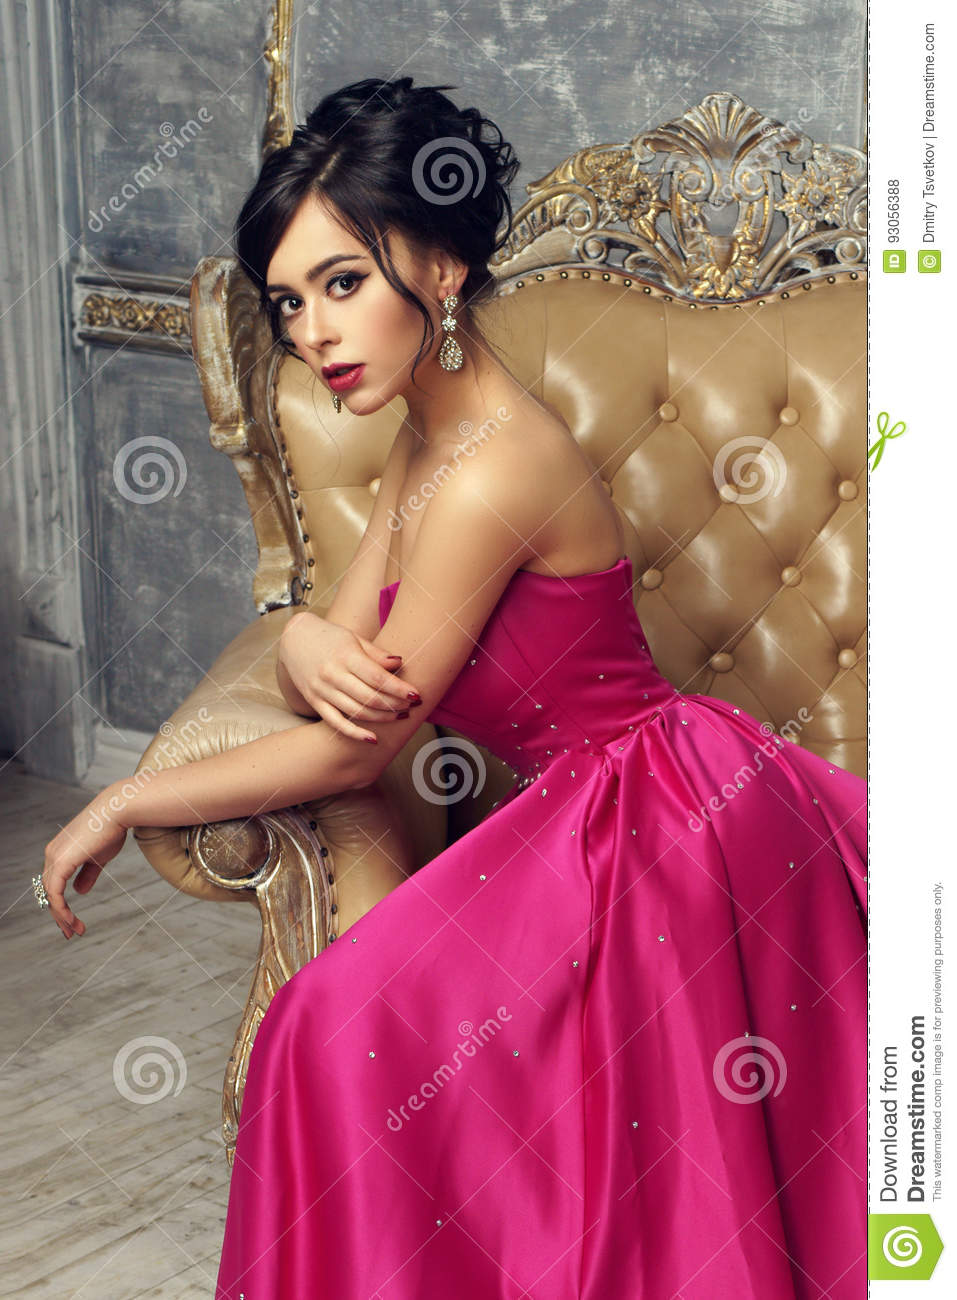 Elegant Lady Wearing Ball Gown Stock Photo  Image of